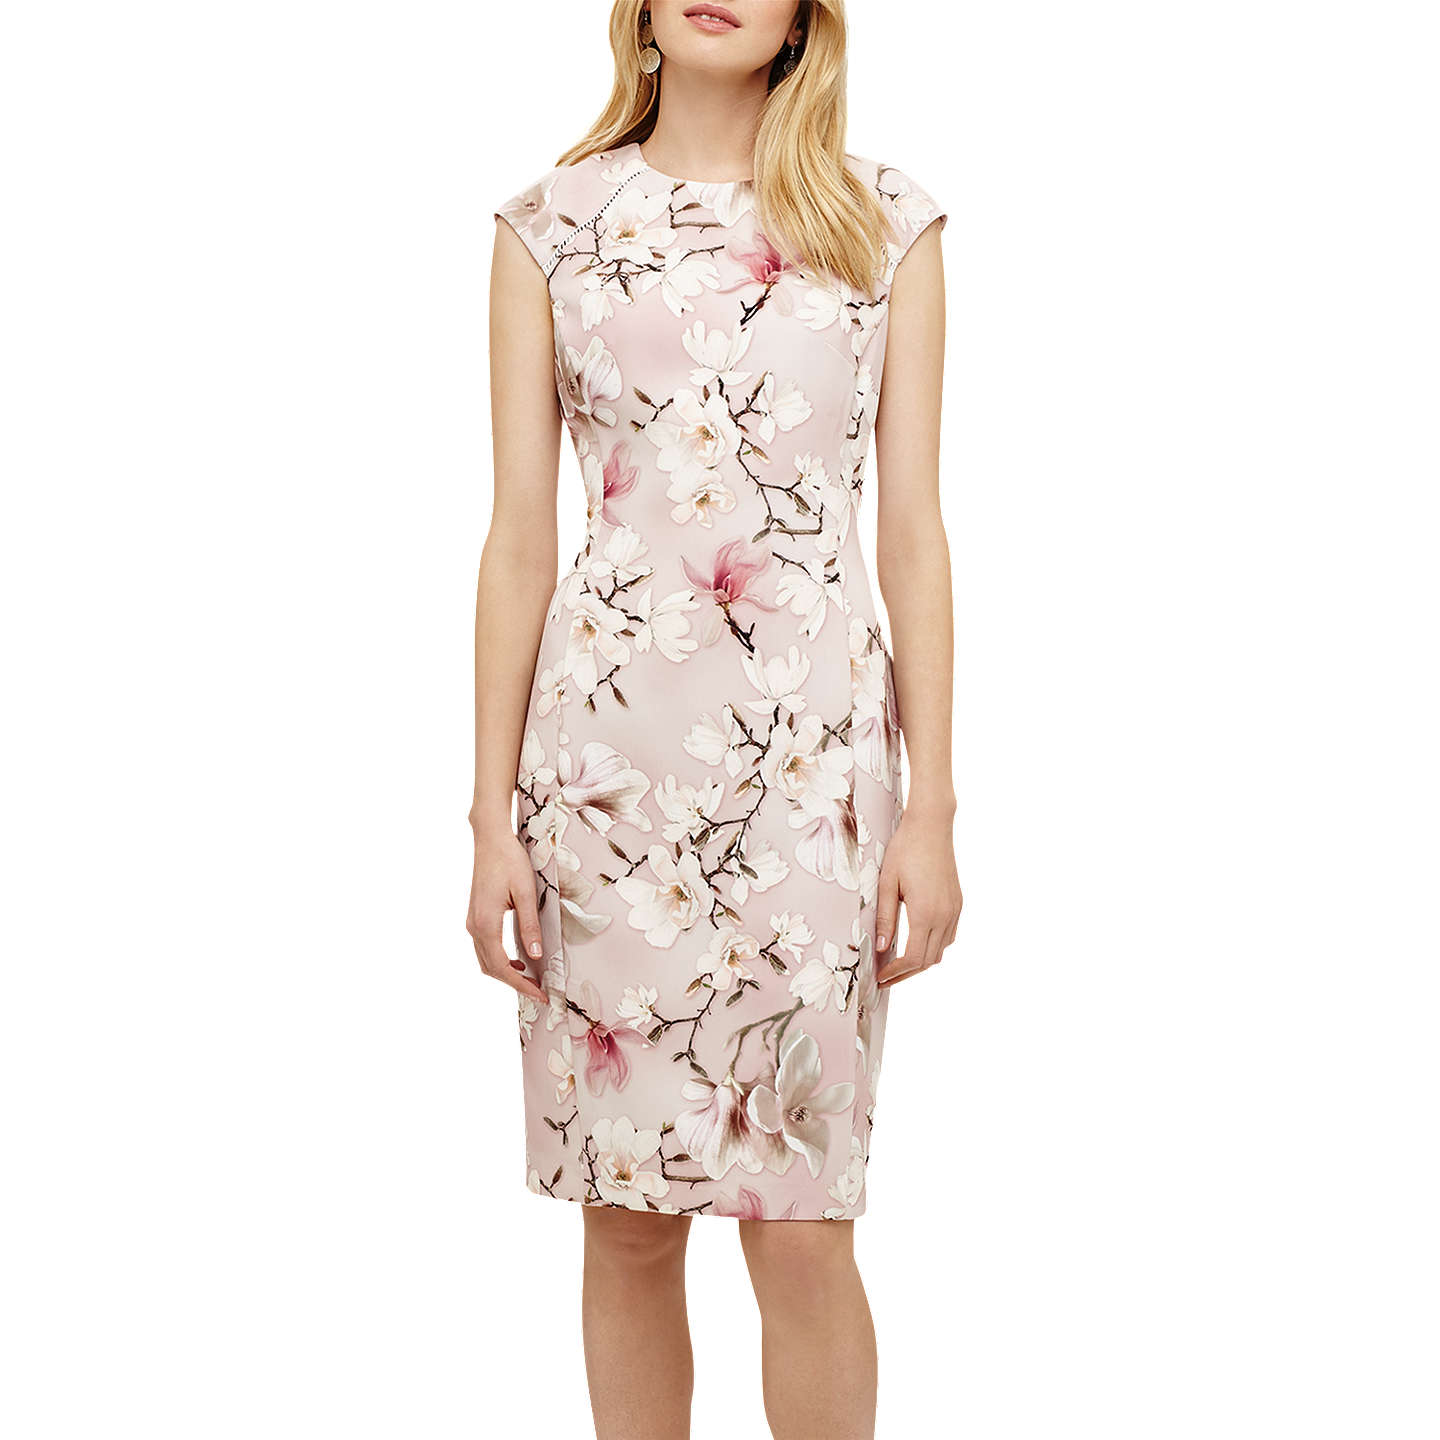 BuyPhase Eight Odette Floral Dress, Rose Pink, 6 Online at johnlewis.com